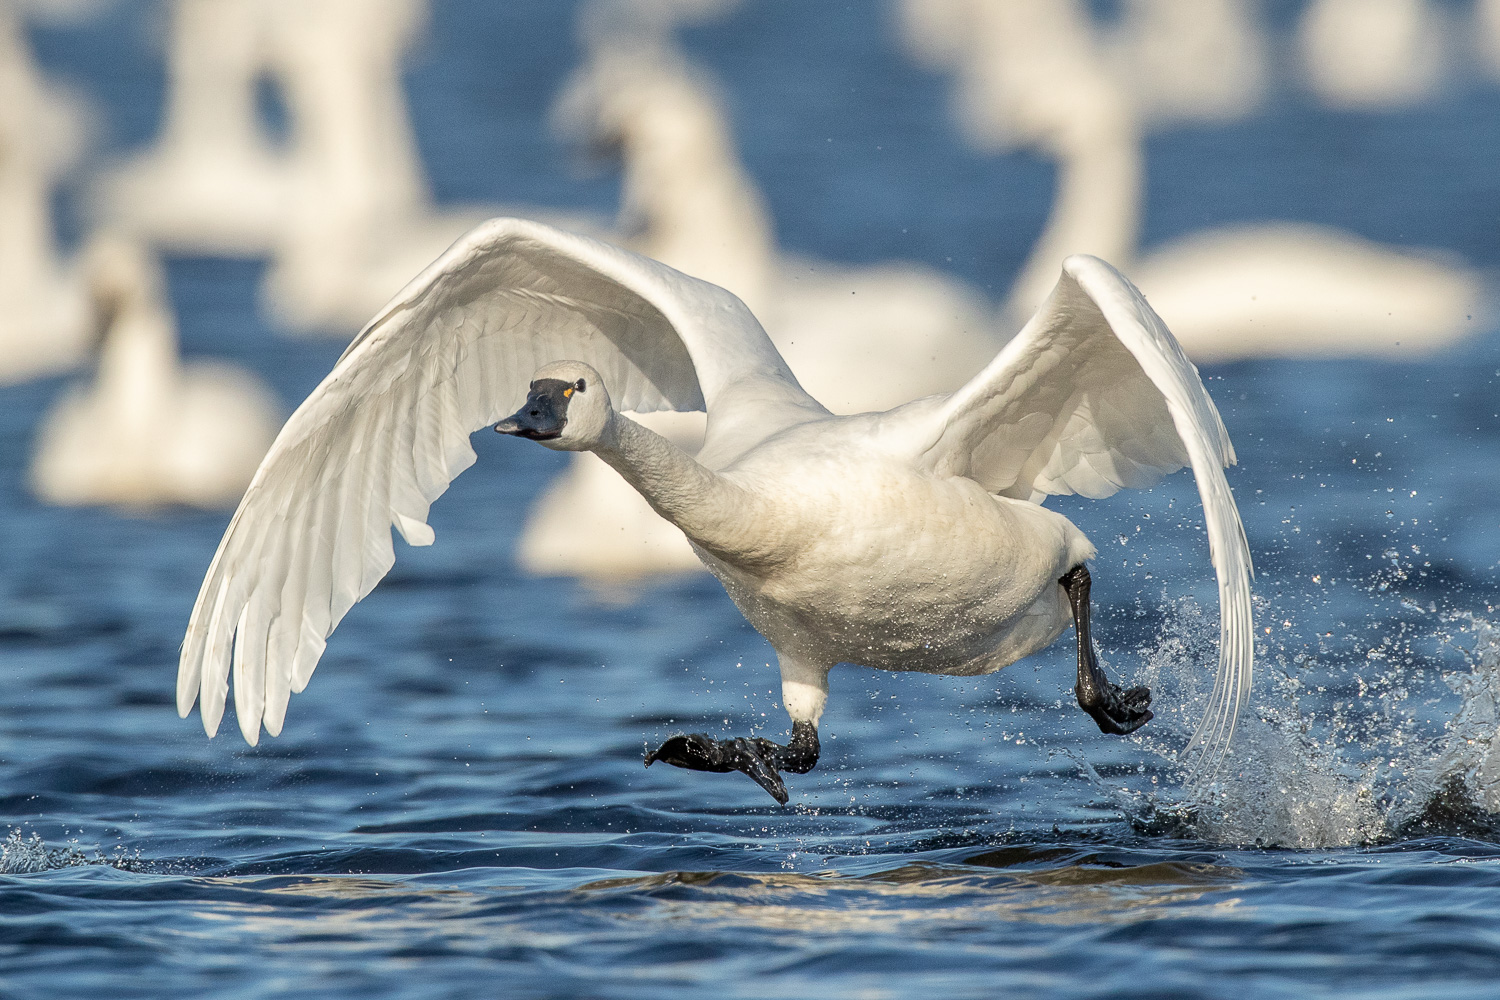 Waterfowl Photography (Mostly Tundra Swan & Snow Geese in eastern NC) - This workshop takes place in eastern North CarolinaJAN 15-17, 2020 | JAN 30-FEB 2, 2020FEB 14-16, 2020